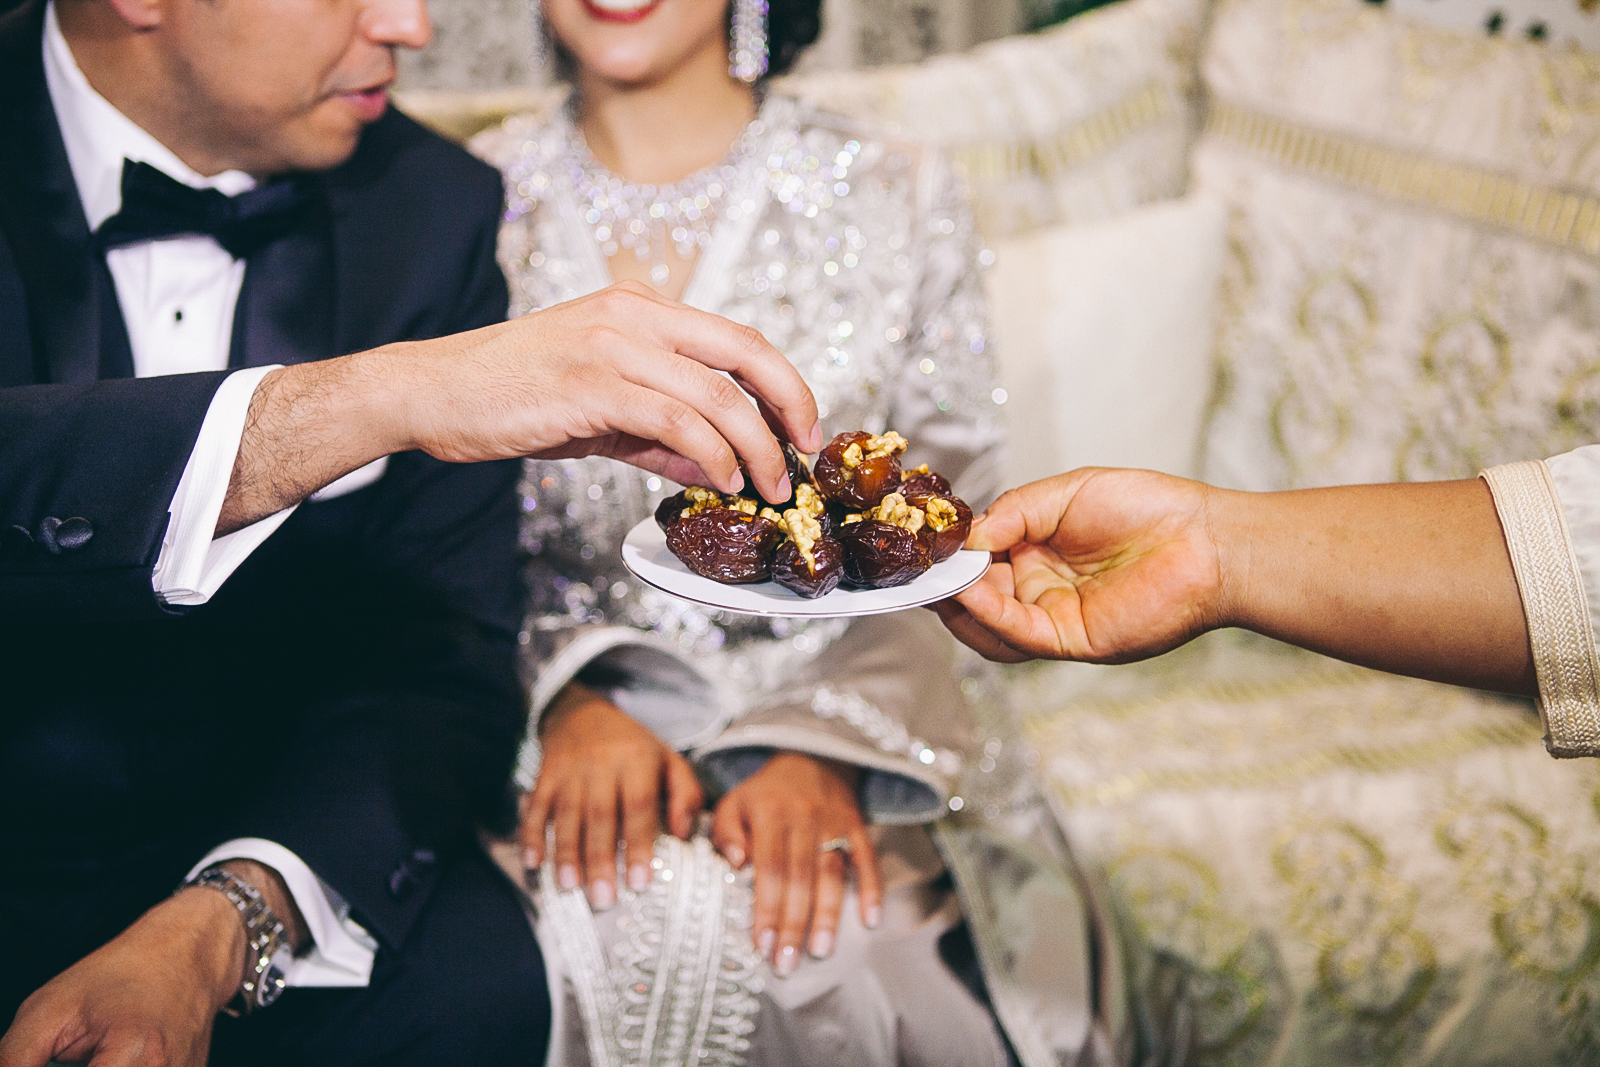 traditional_moroccan_wedding_photographry_casablanca_morocco_houda_vivek_ebony_siovhan_bokeh_photography_088.jpg